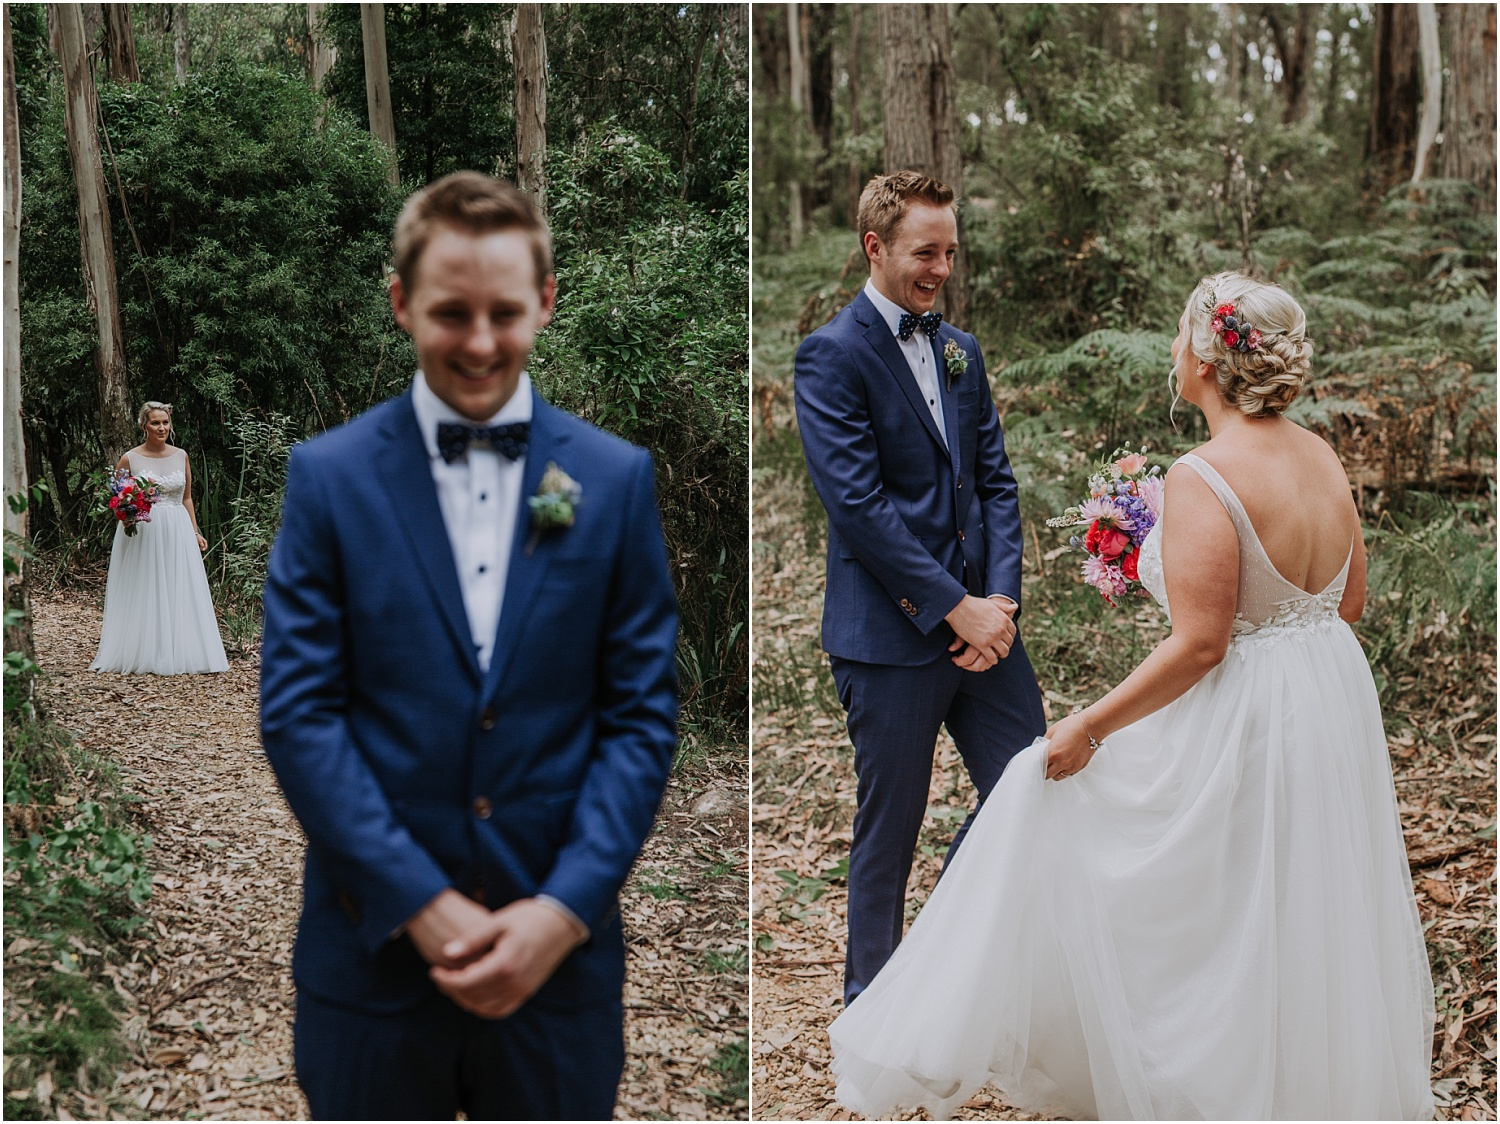 Ainslee and Warwick's elopement at Erskin Falls and the Lorne Beach Pavilion on the Great Ocean Road._0030.jpg